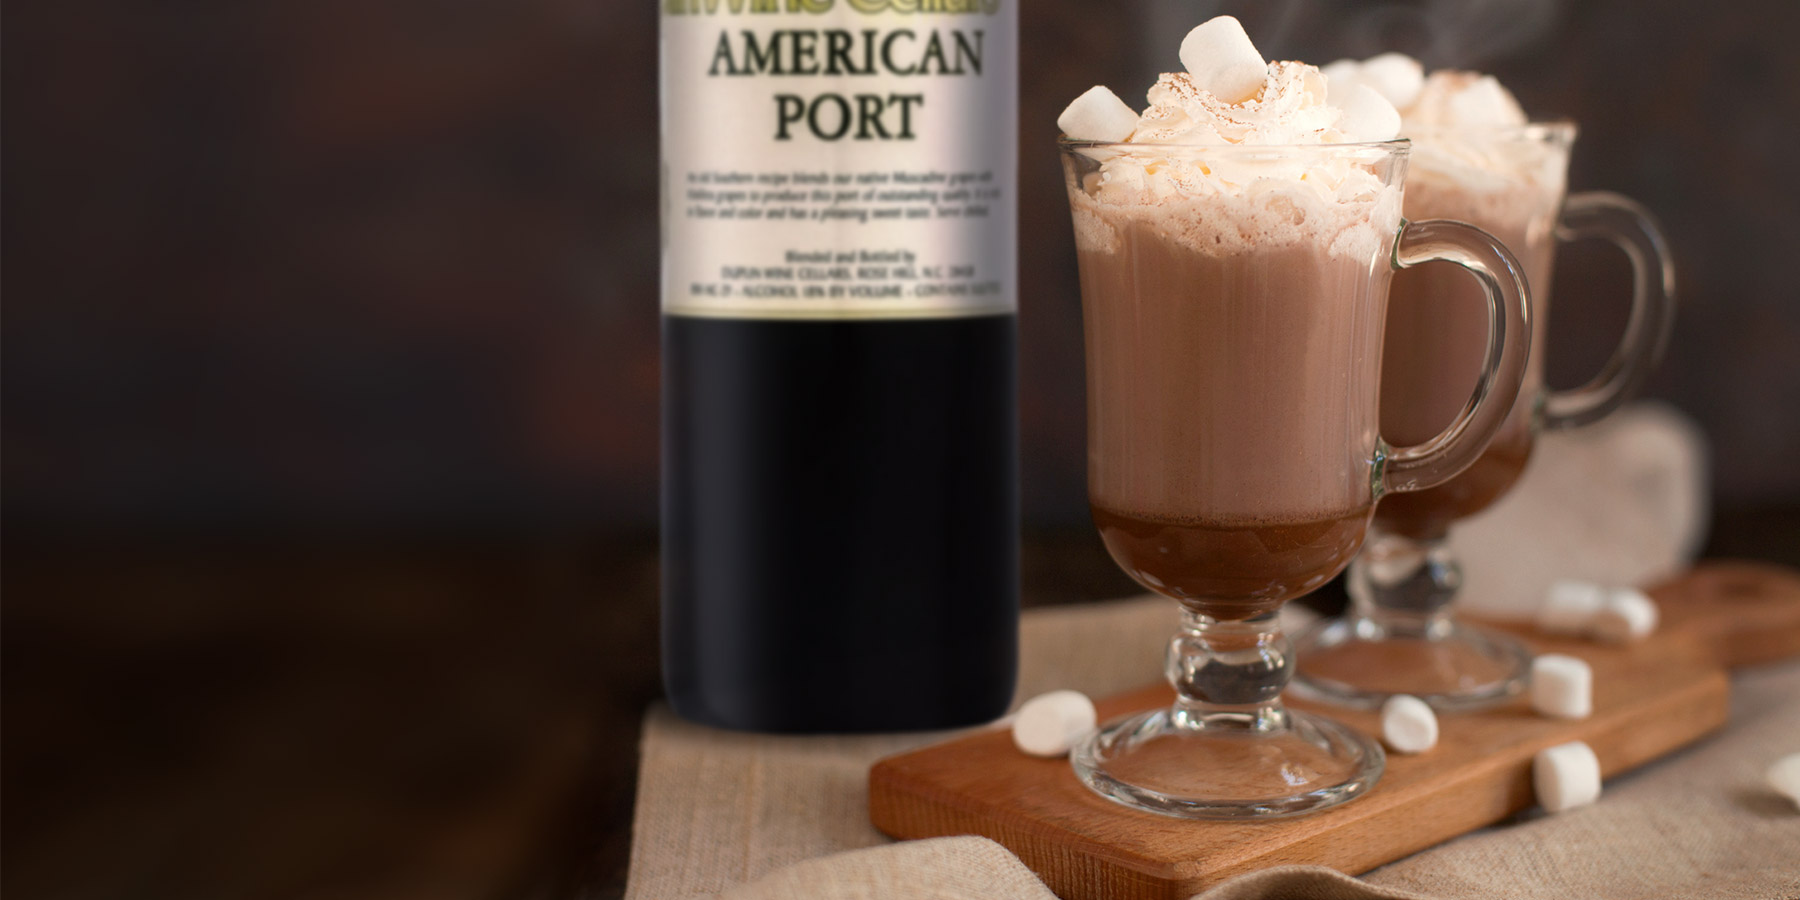 Chocolate with port is a classic wine pairing, so try hot chocolate with a shot of Duplin Port wine.